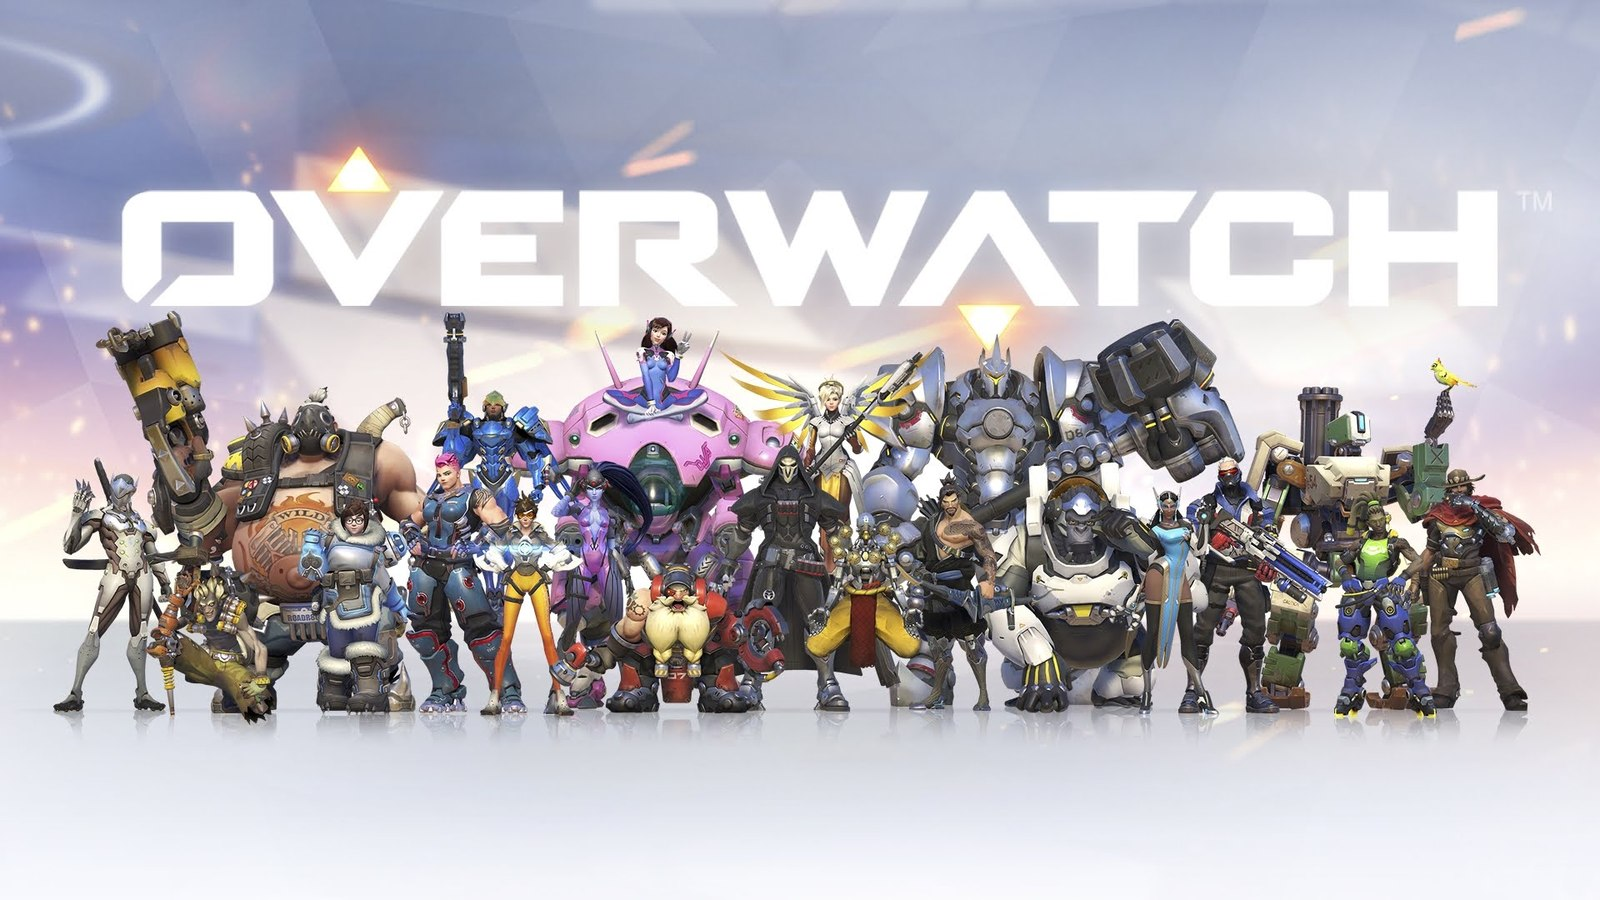 Overwatch: Standard Edition (Battle.net) &#128273